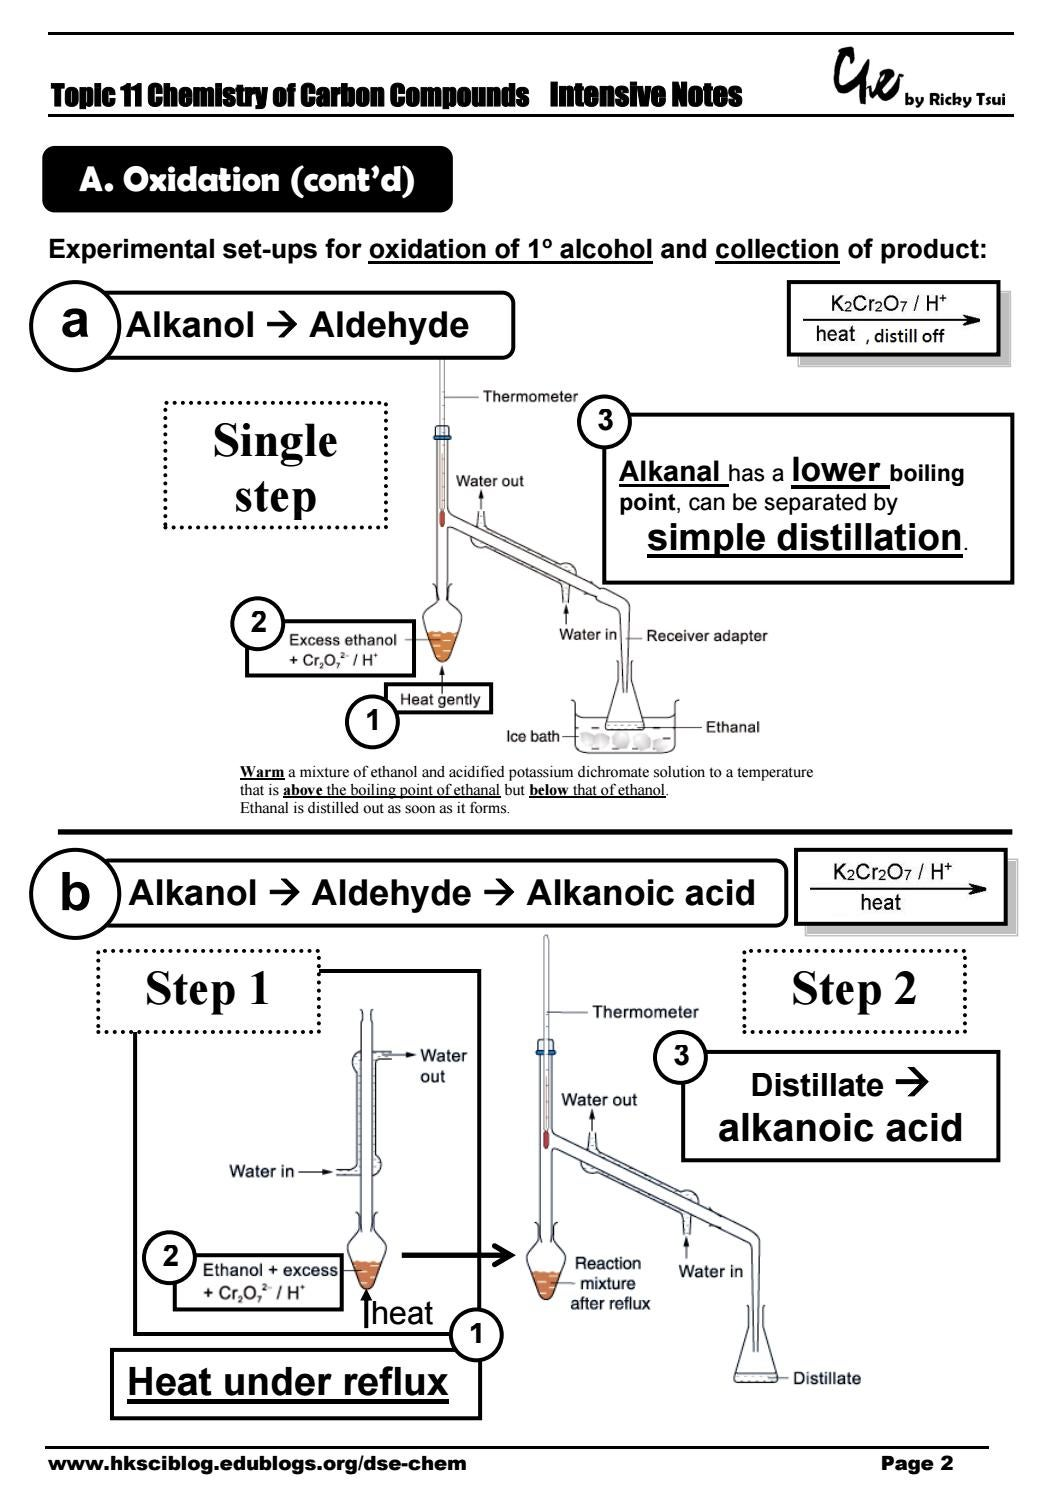 Topic 11 Chemistry of carbon compounds (intensive notes) by